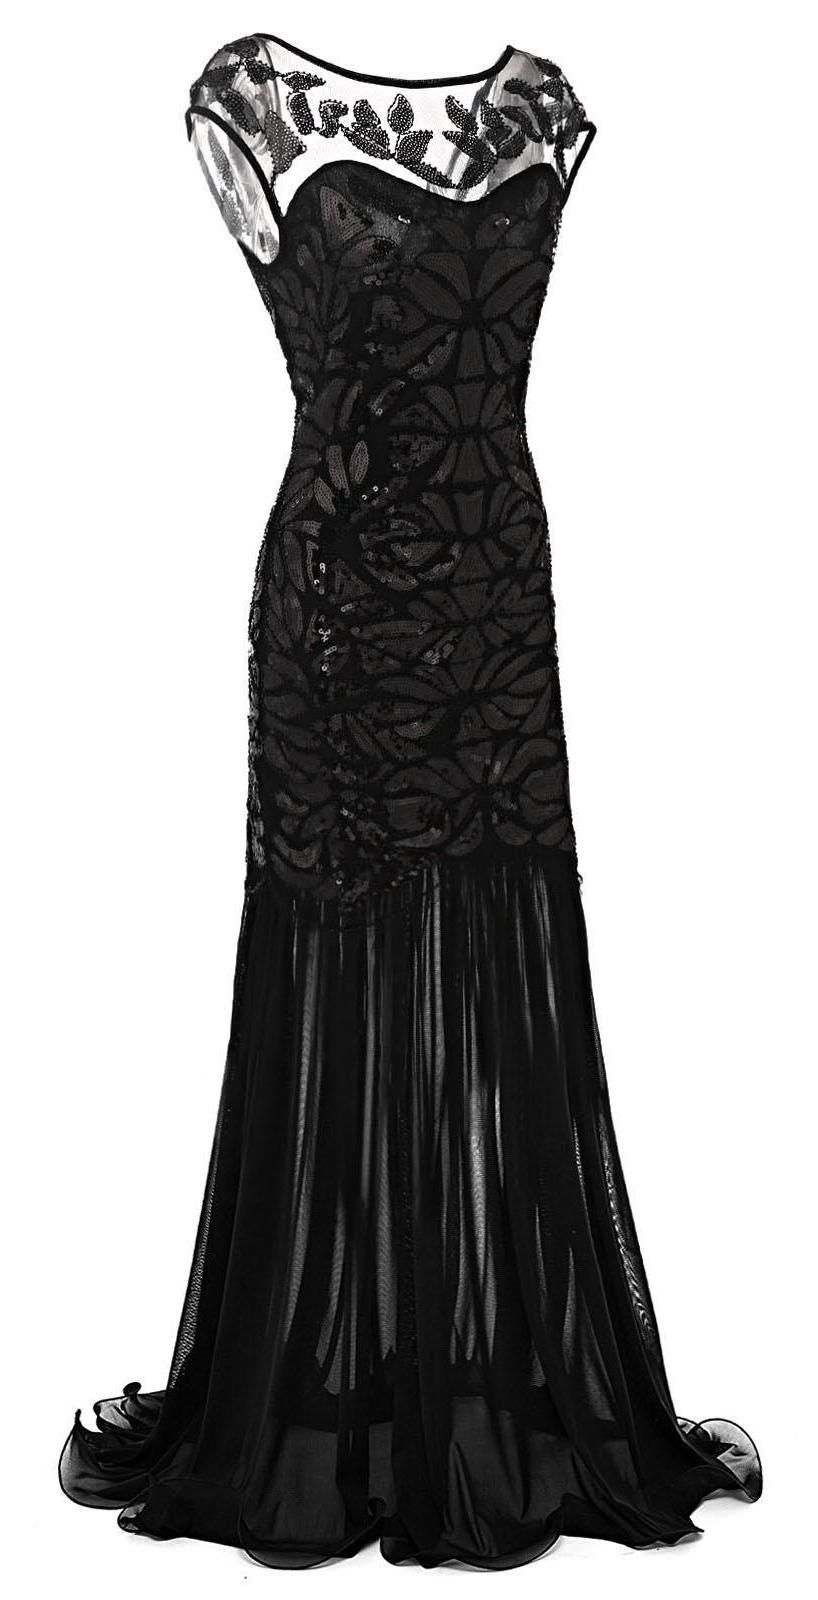 57199df89ad3 Black 1920s Vintage Sequin Embellished Maxi Flapper Party Dress ...